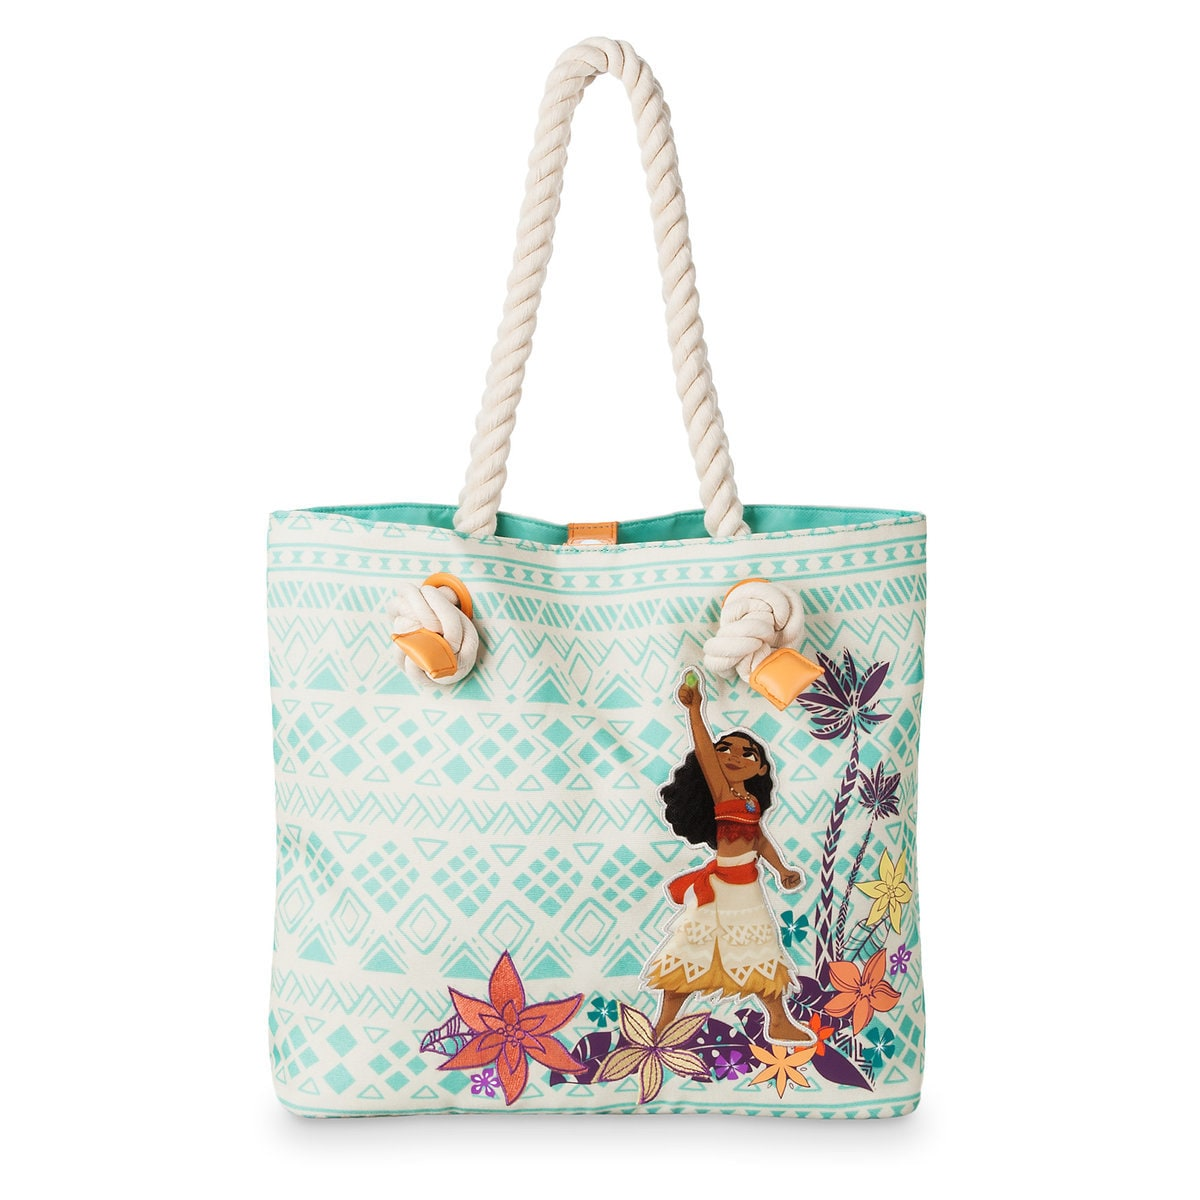 a61656bbdd2 Product Image of Moana Swim Bag for Kids   1